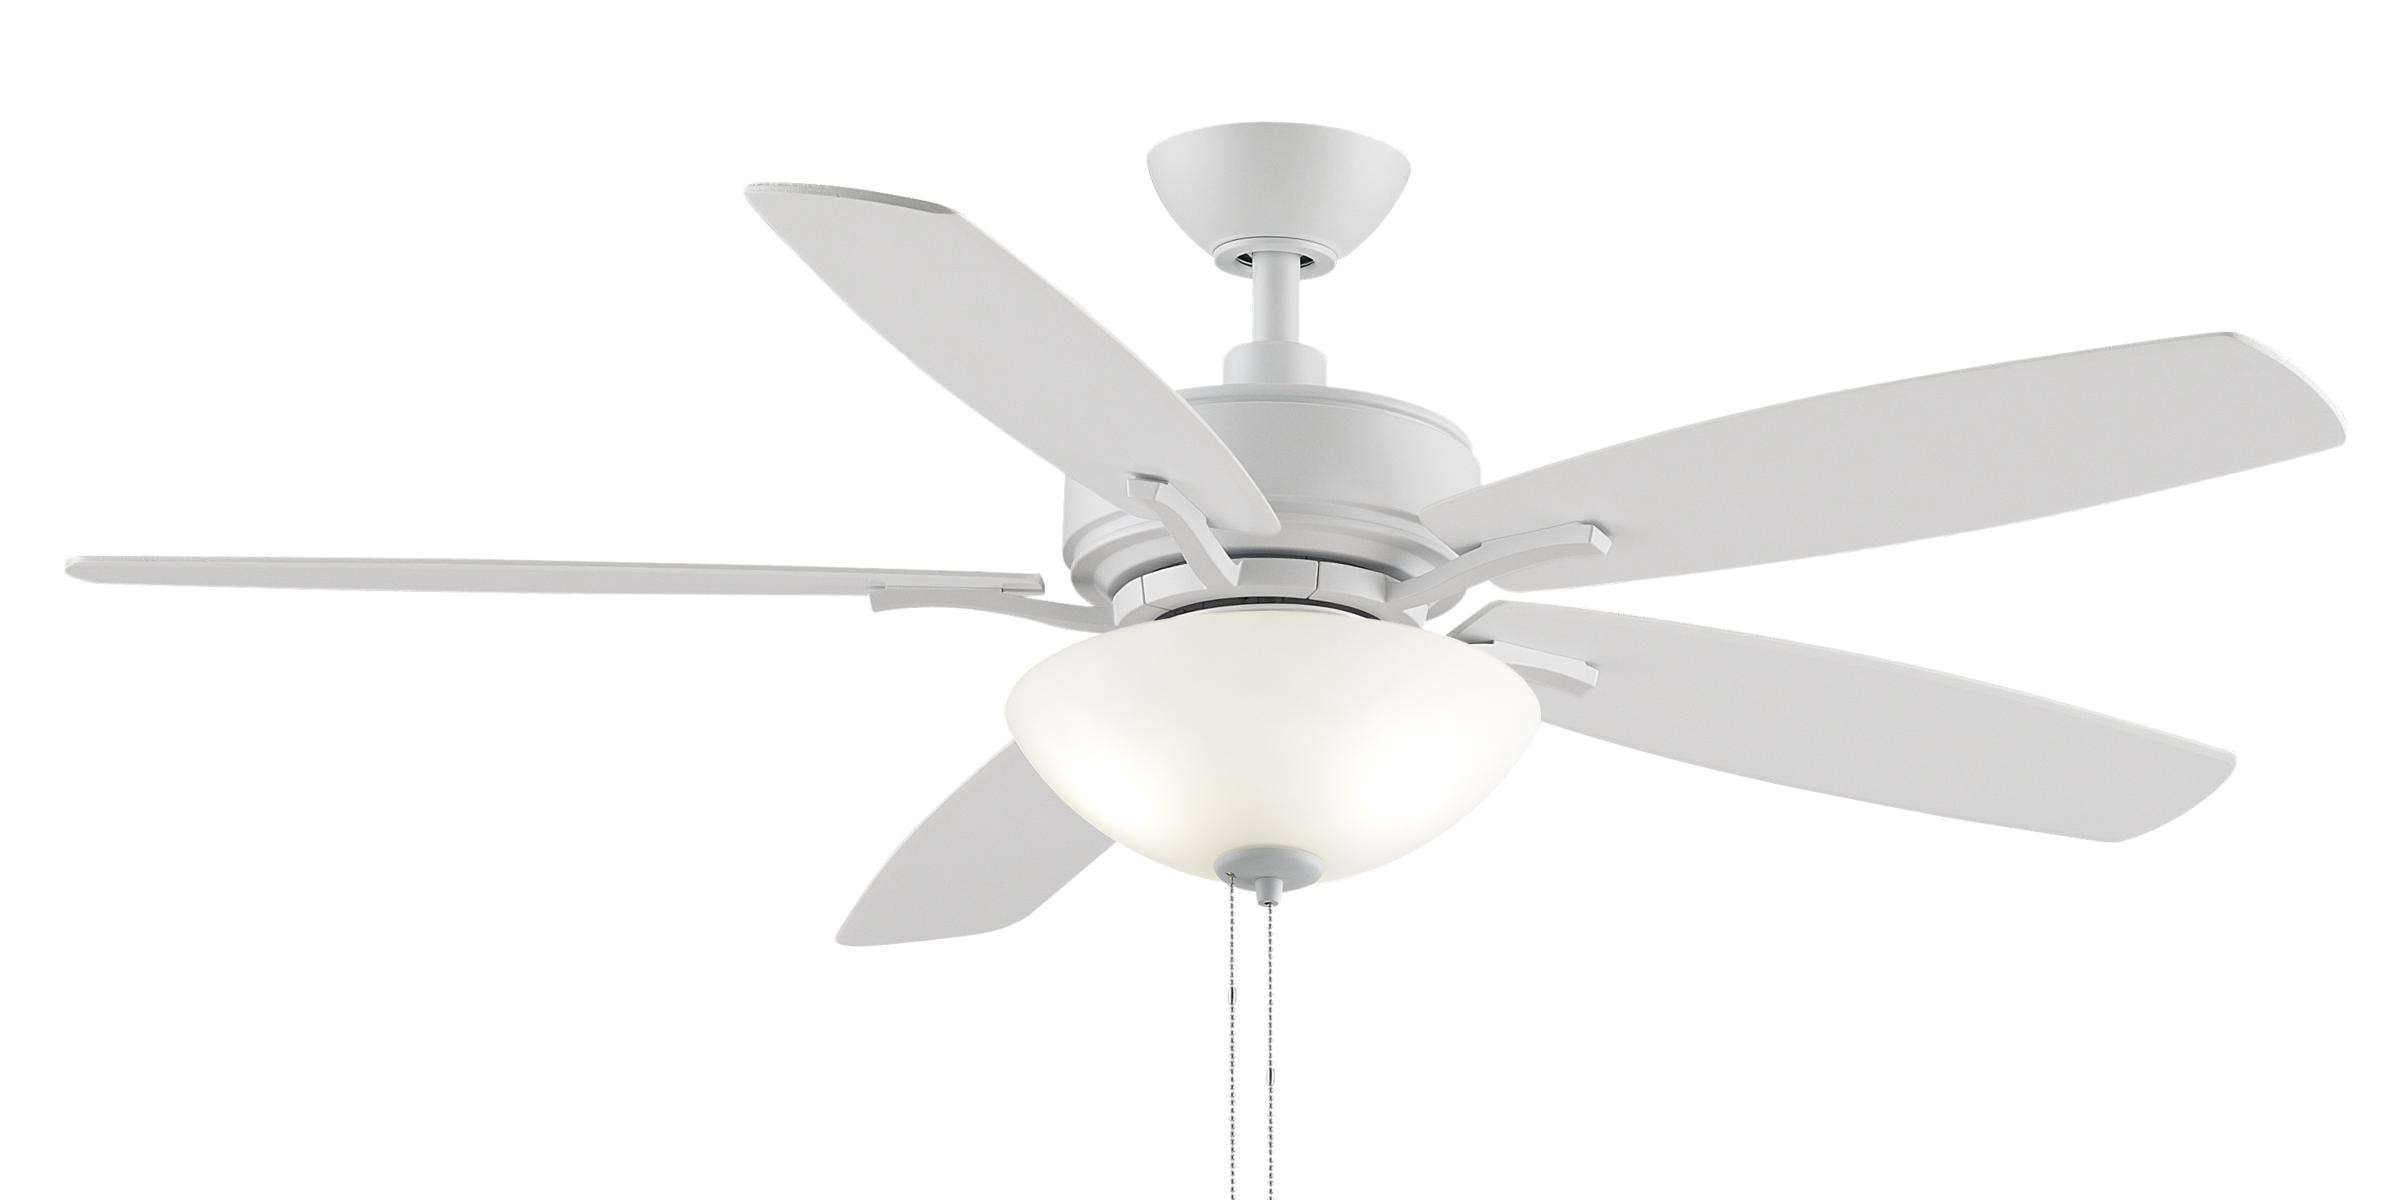 "Fanimation Aire Deluxe 52"" LED Ceiling Fan Model FP6285BMW in Matte White"